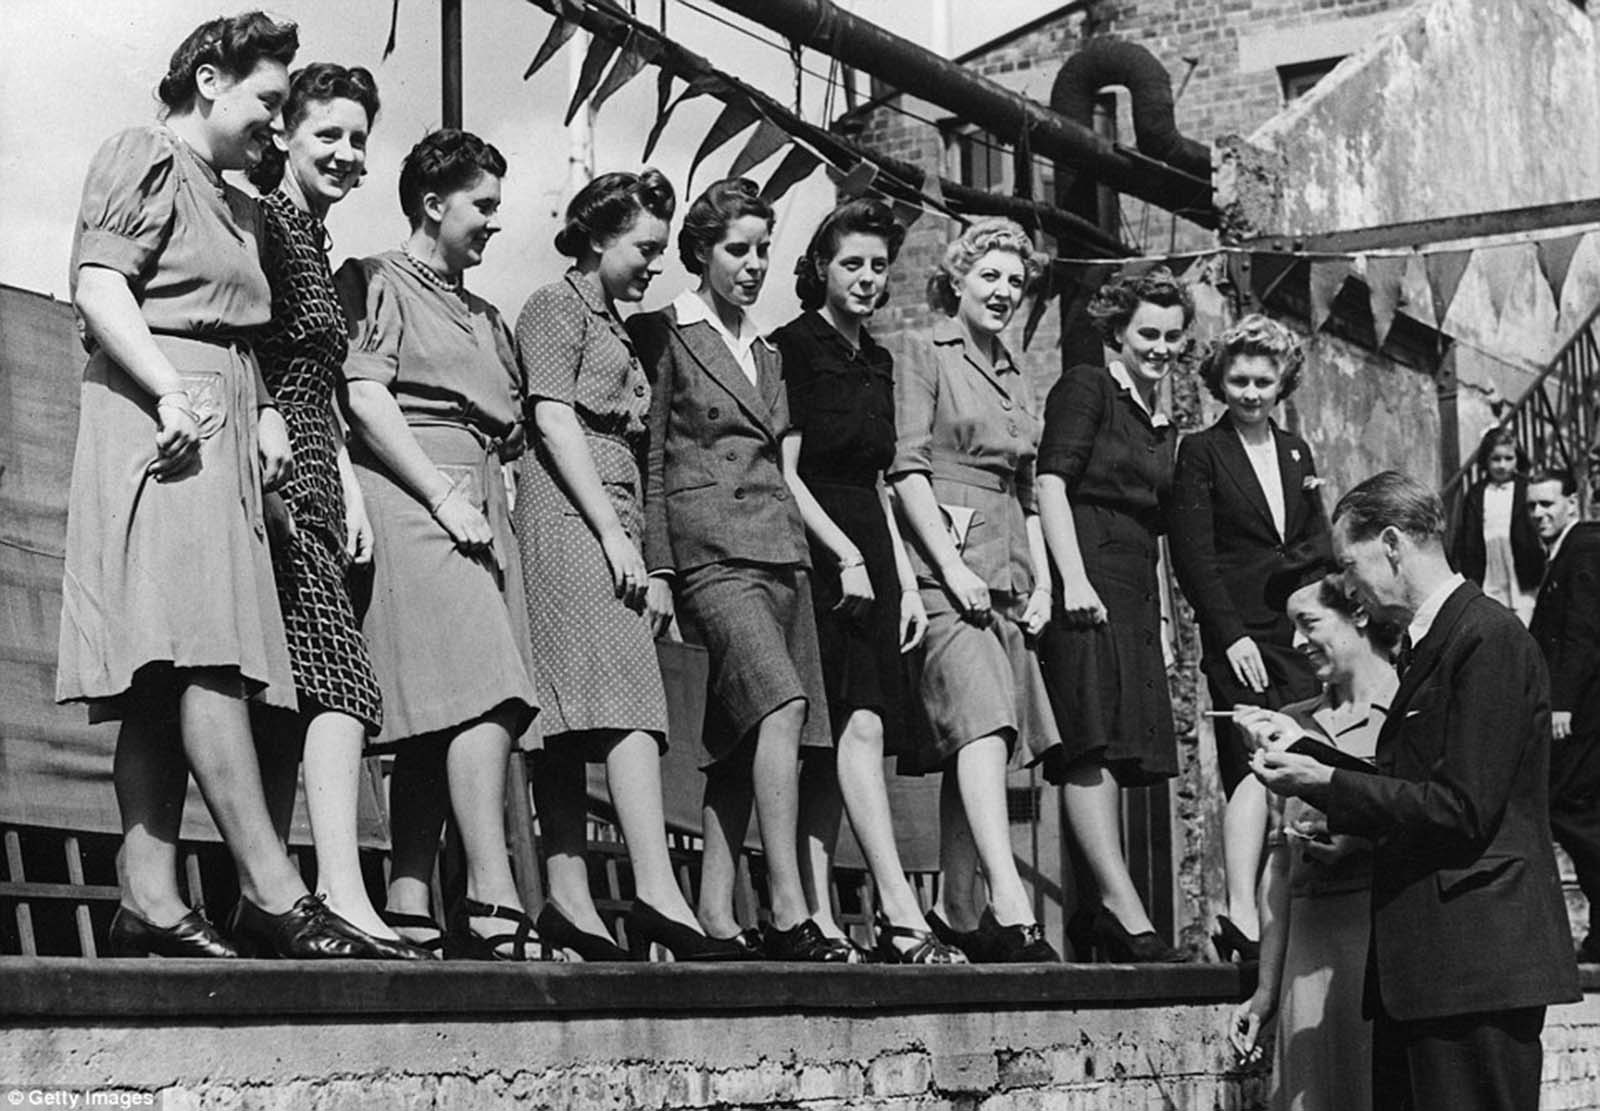 The ankle judging competition at Selfridges department store's annual sports meeting on the roof of the shop's building in London's Oxford Street in 1943.